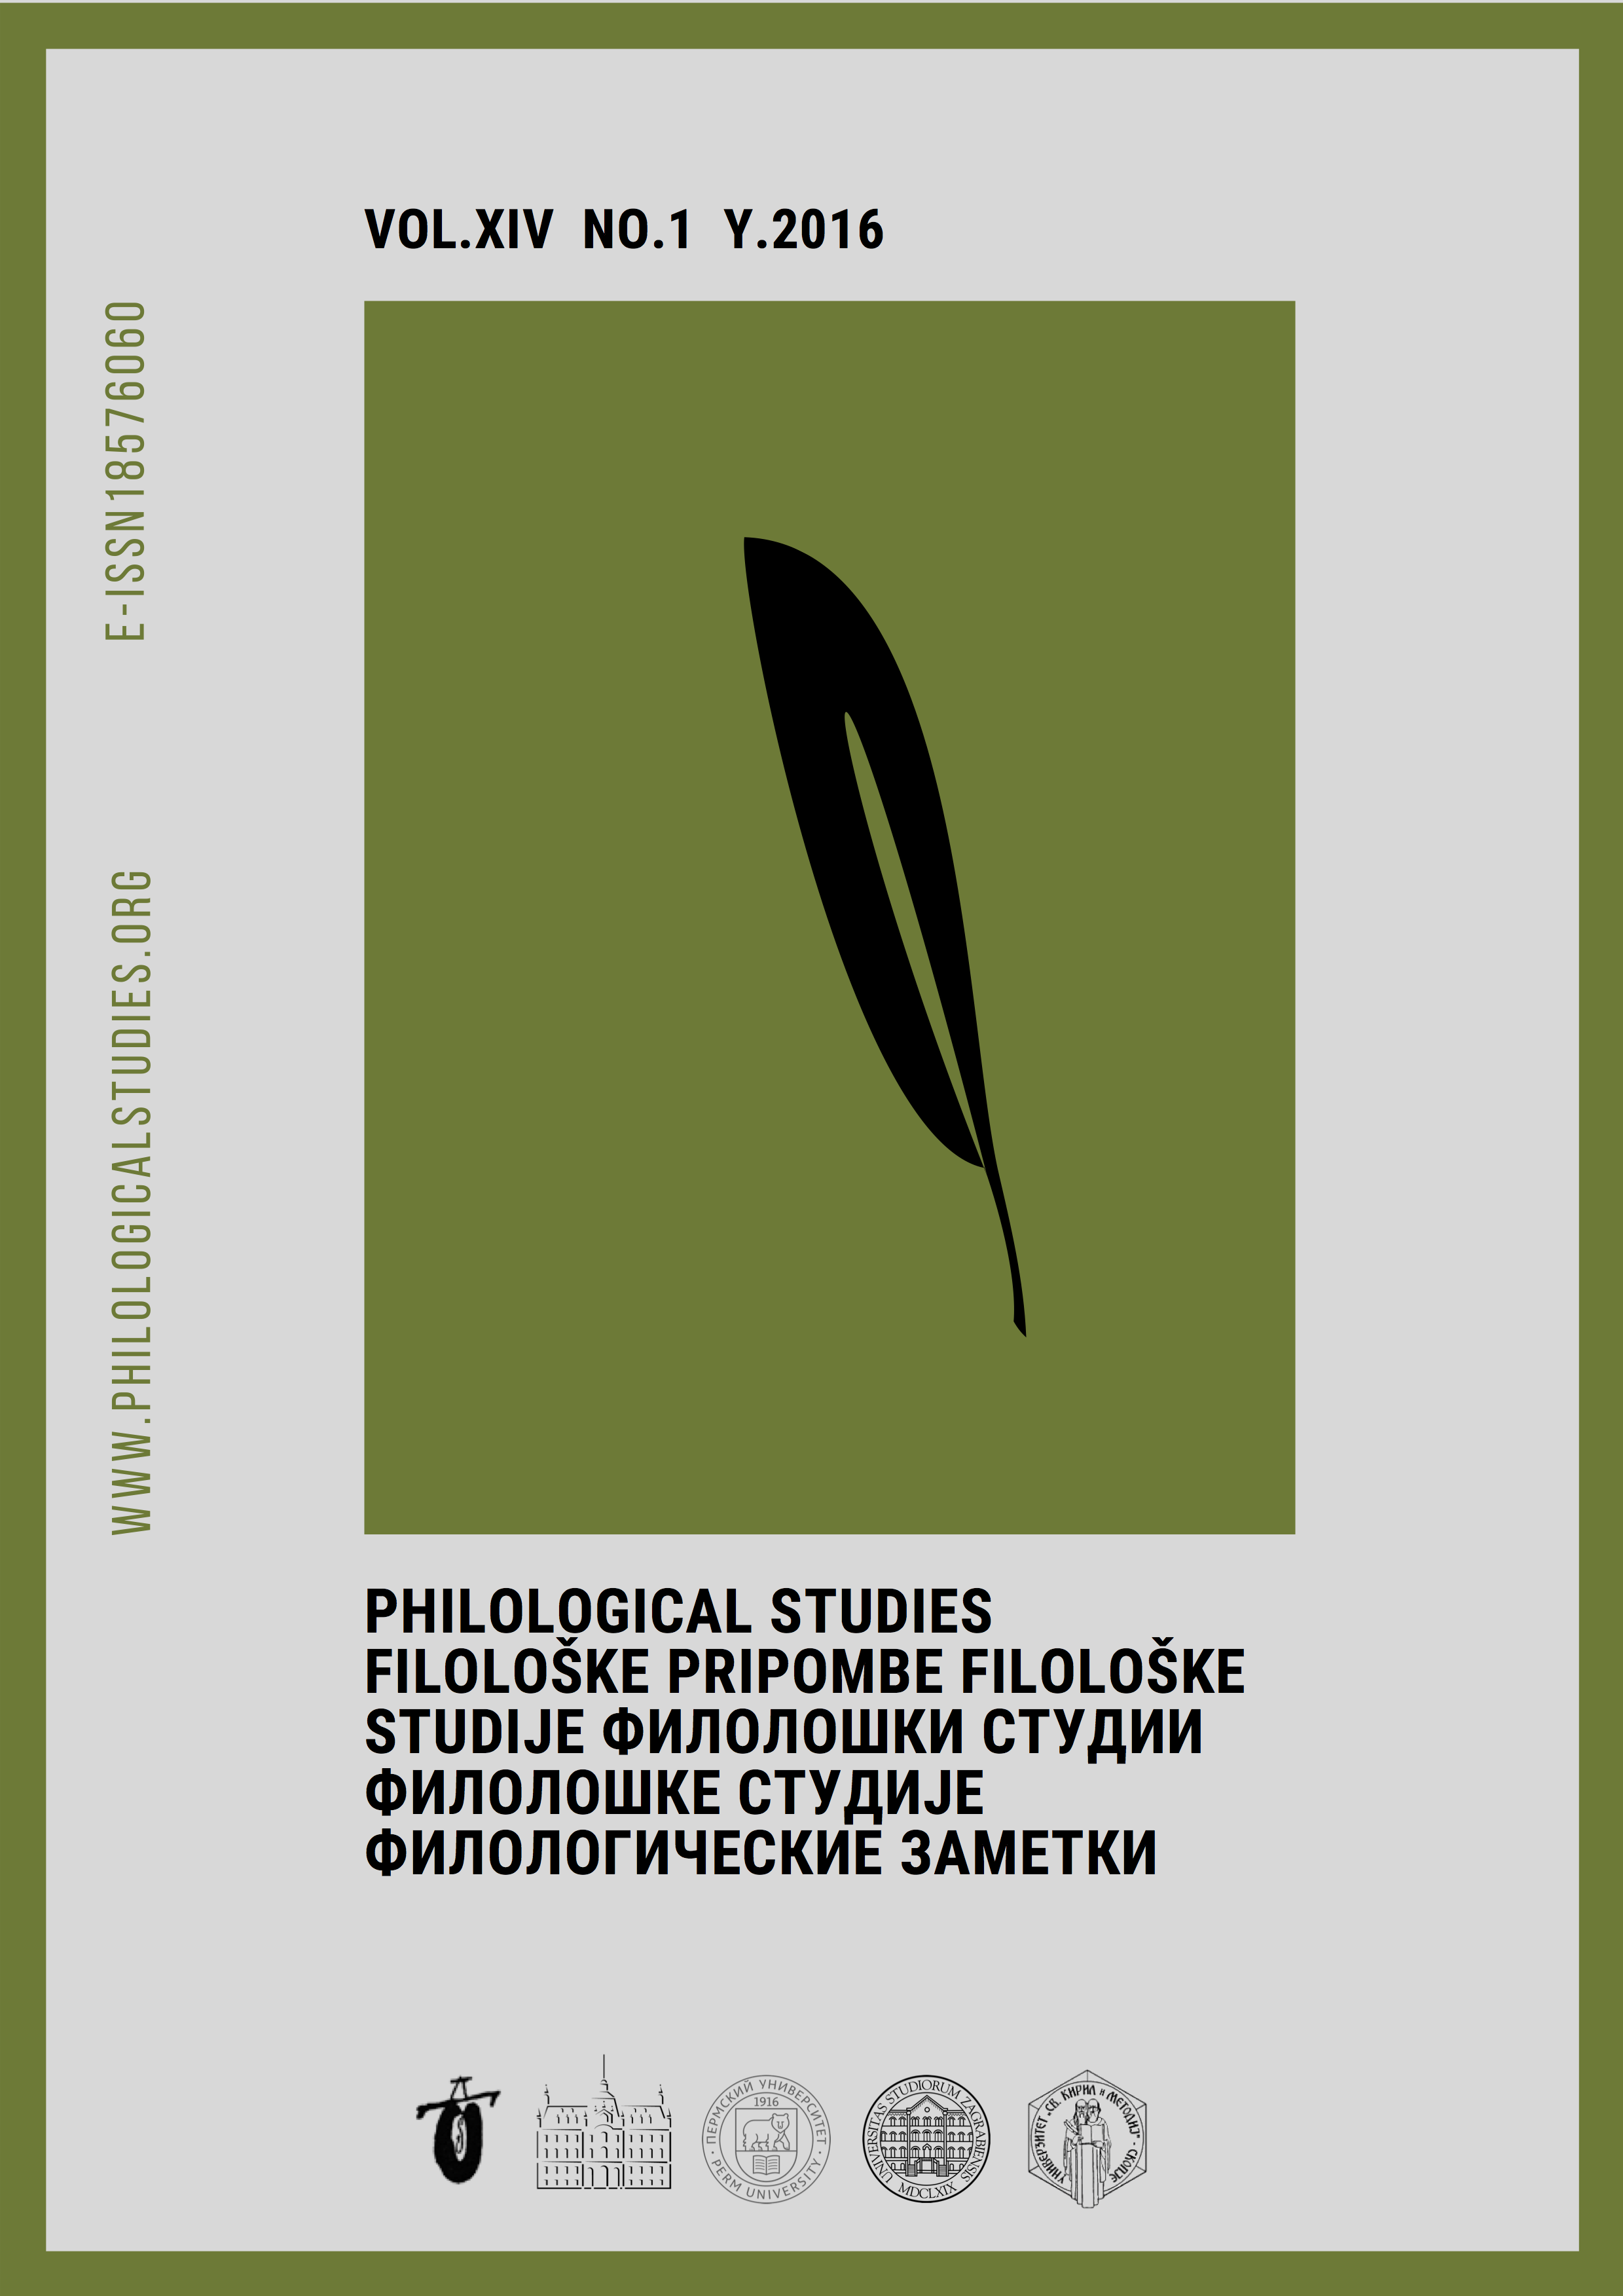 Philological Studies Vol.14 No.1 2016